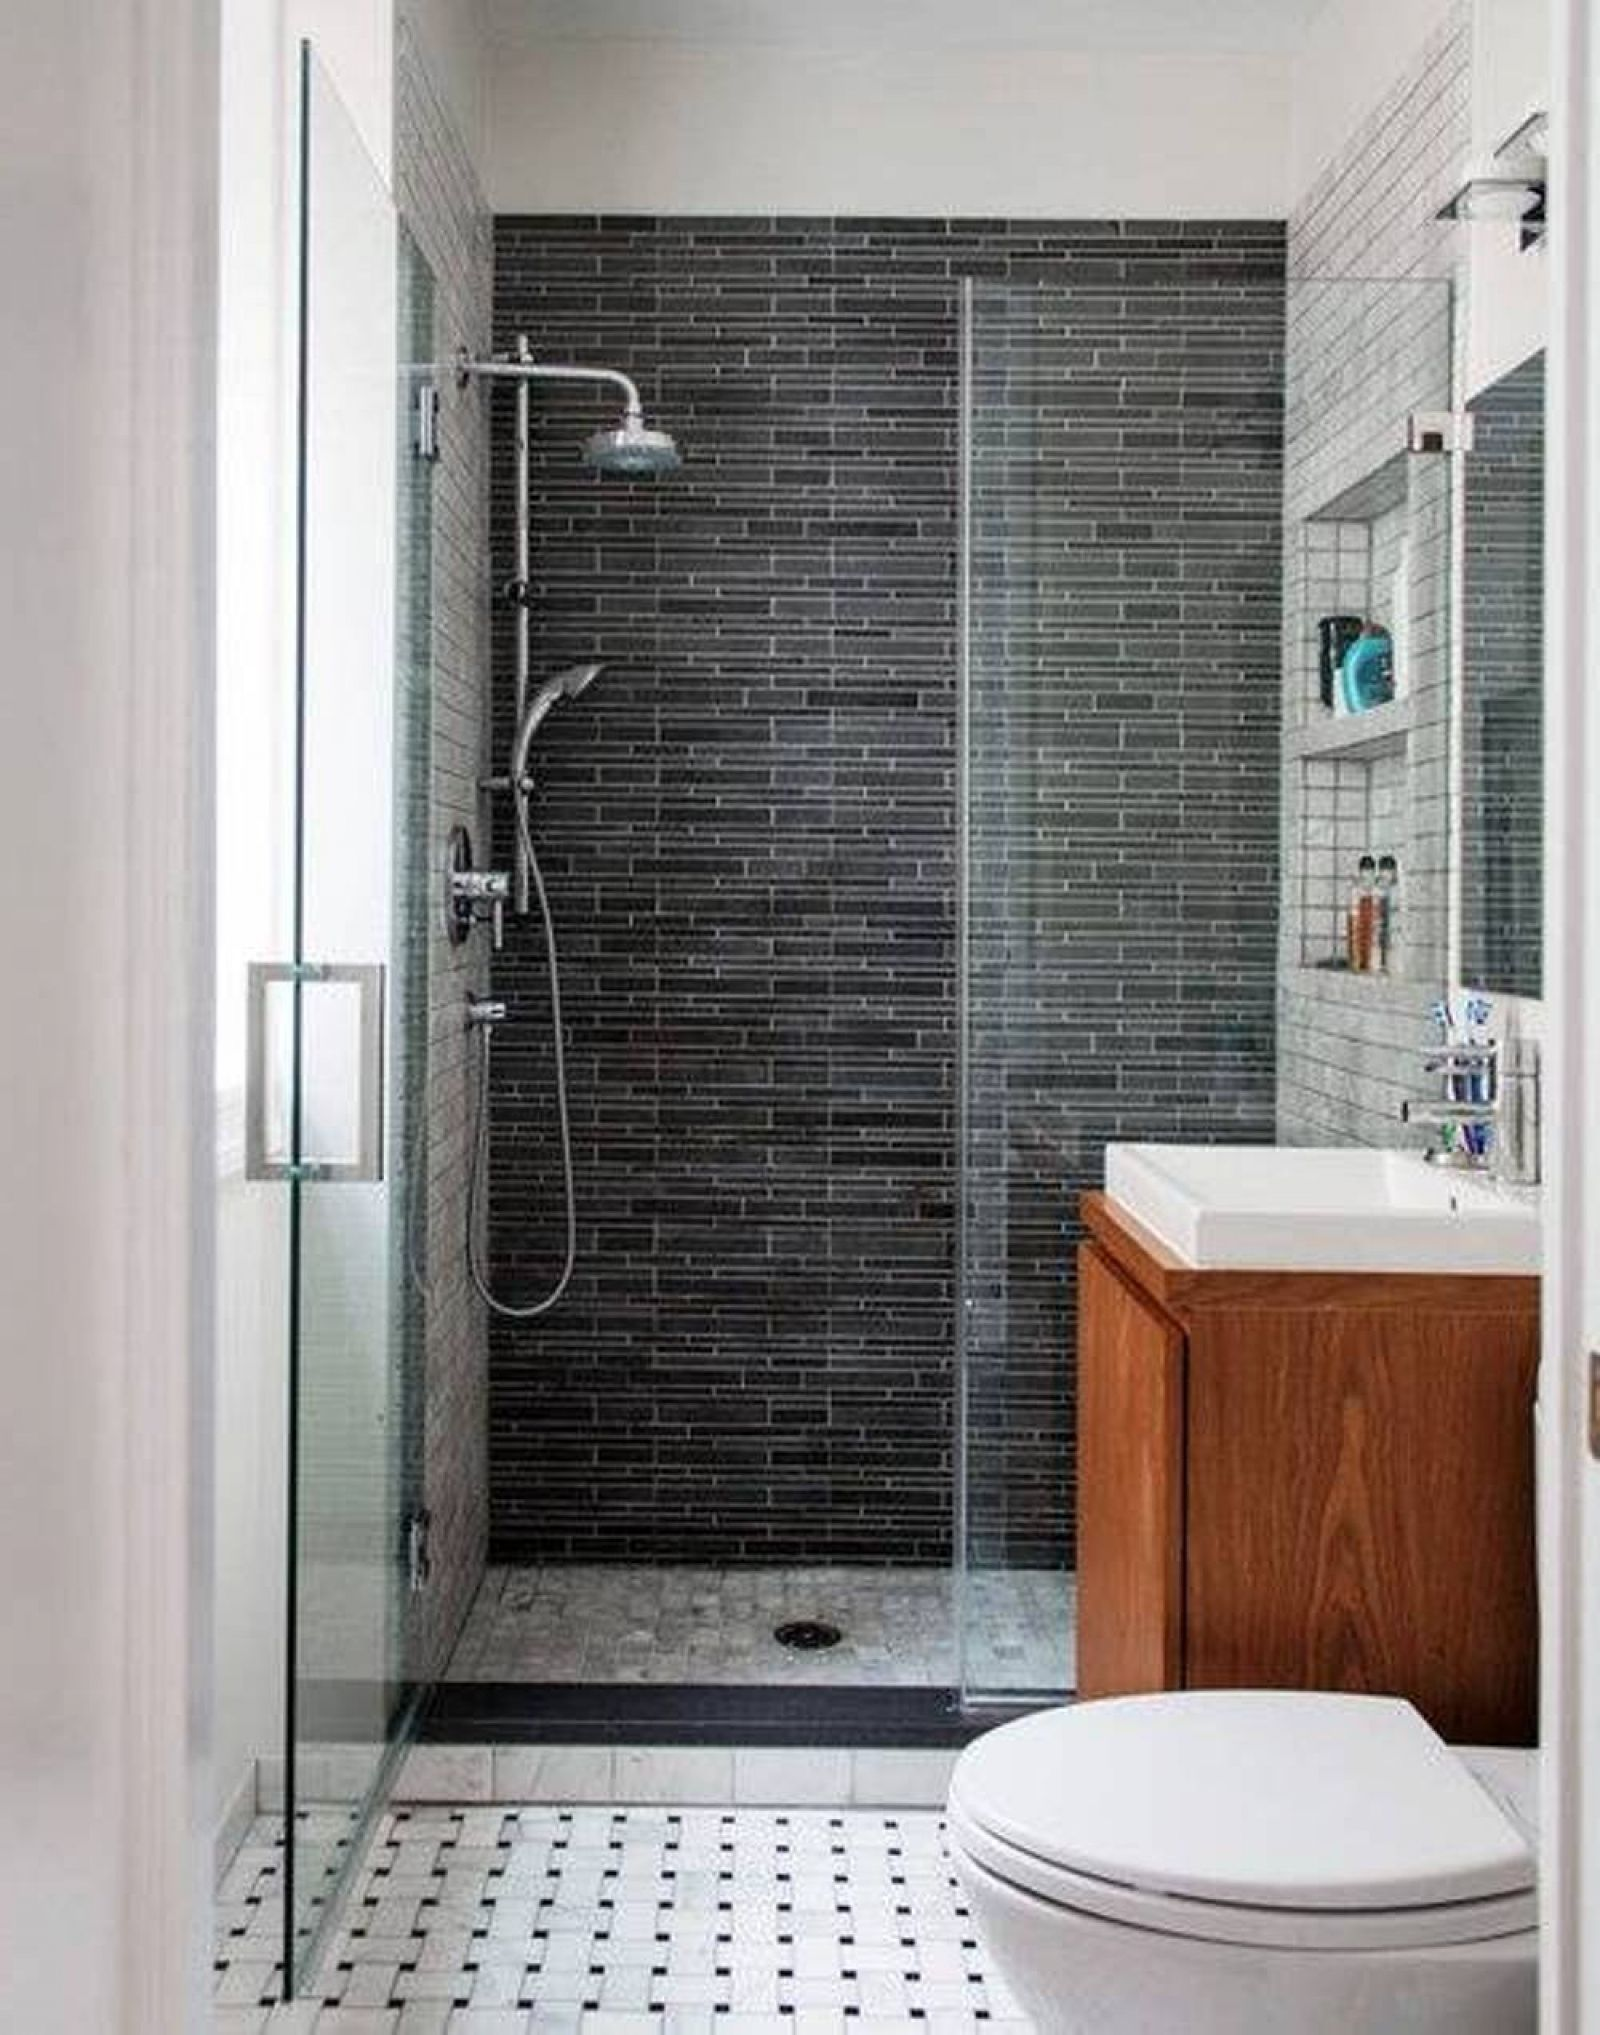 Small Bathroom Ideas Photo Gallery For Small Bathroom Remodel Ideas Designer Bathroom Ideas For Sma Small Bathroom Remodel Small Space Bathroom Bathroom Layout